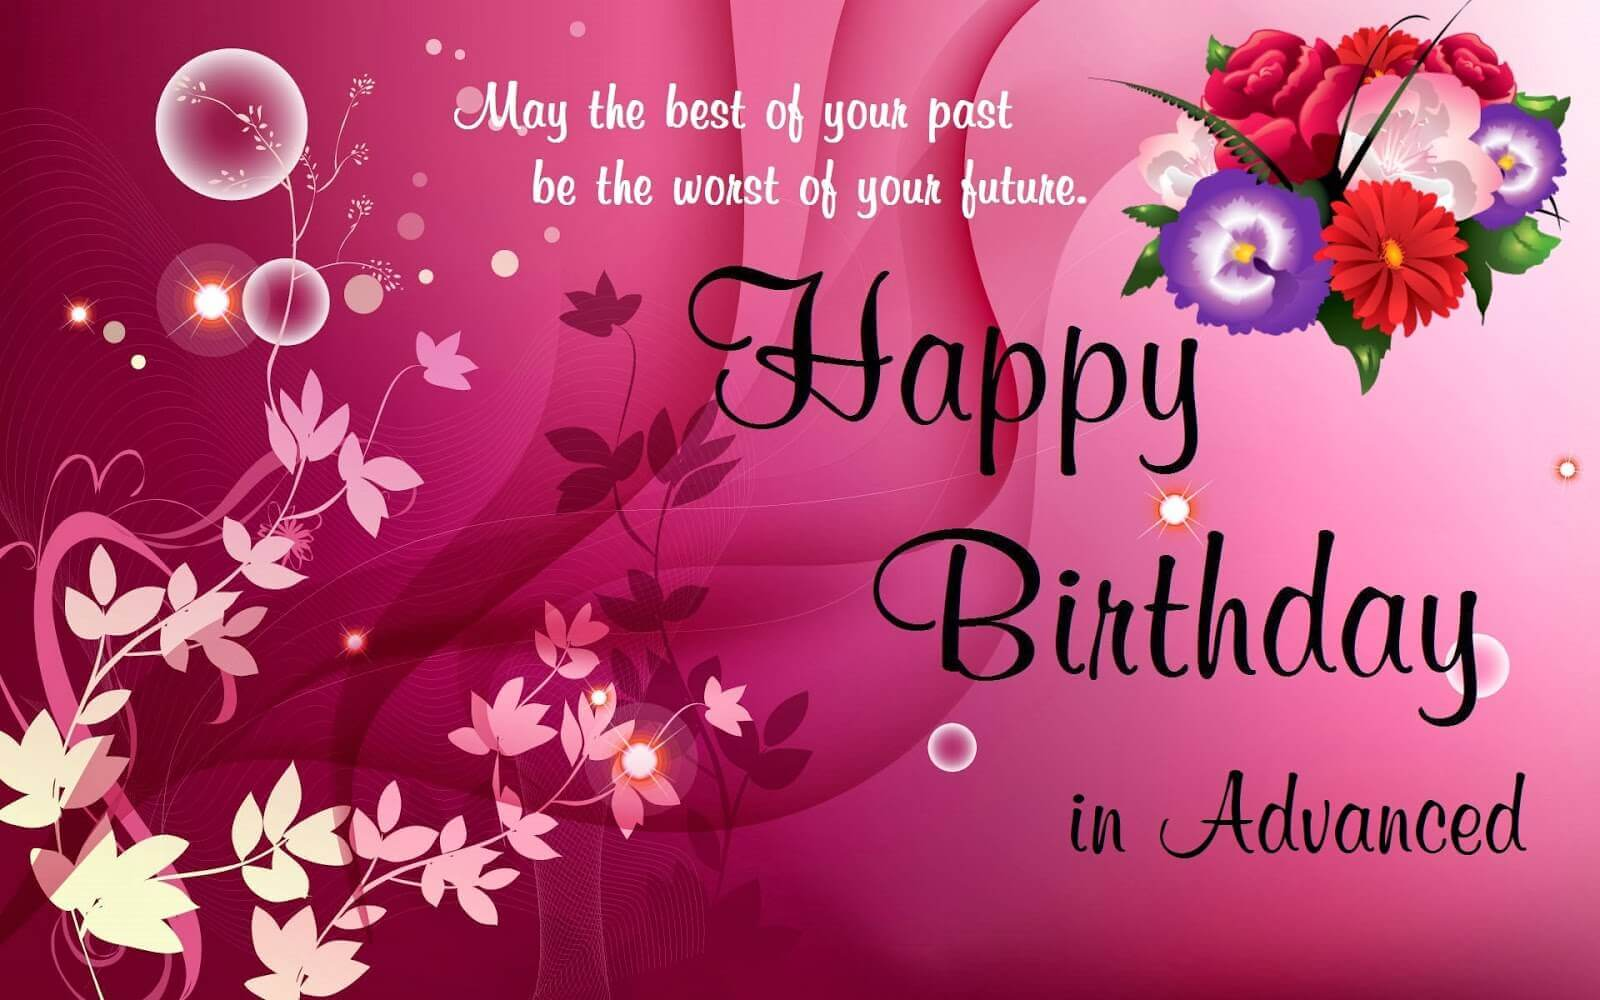 birthday messages and pictures ; advance-happy-birthday-wishes